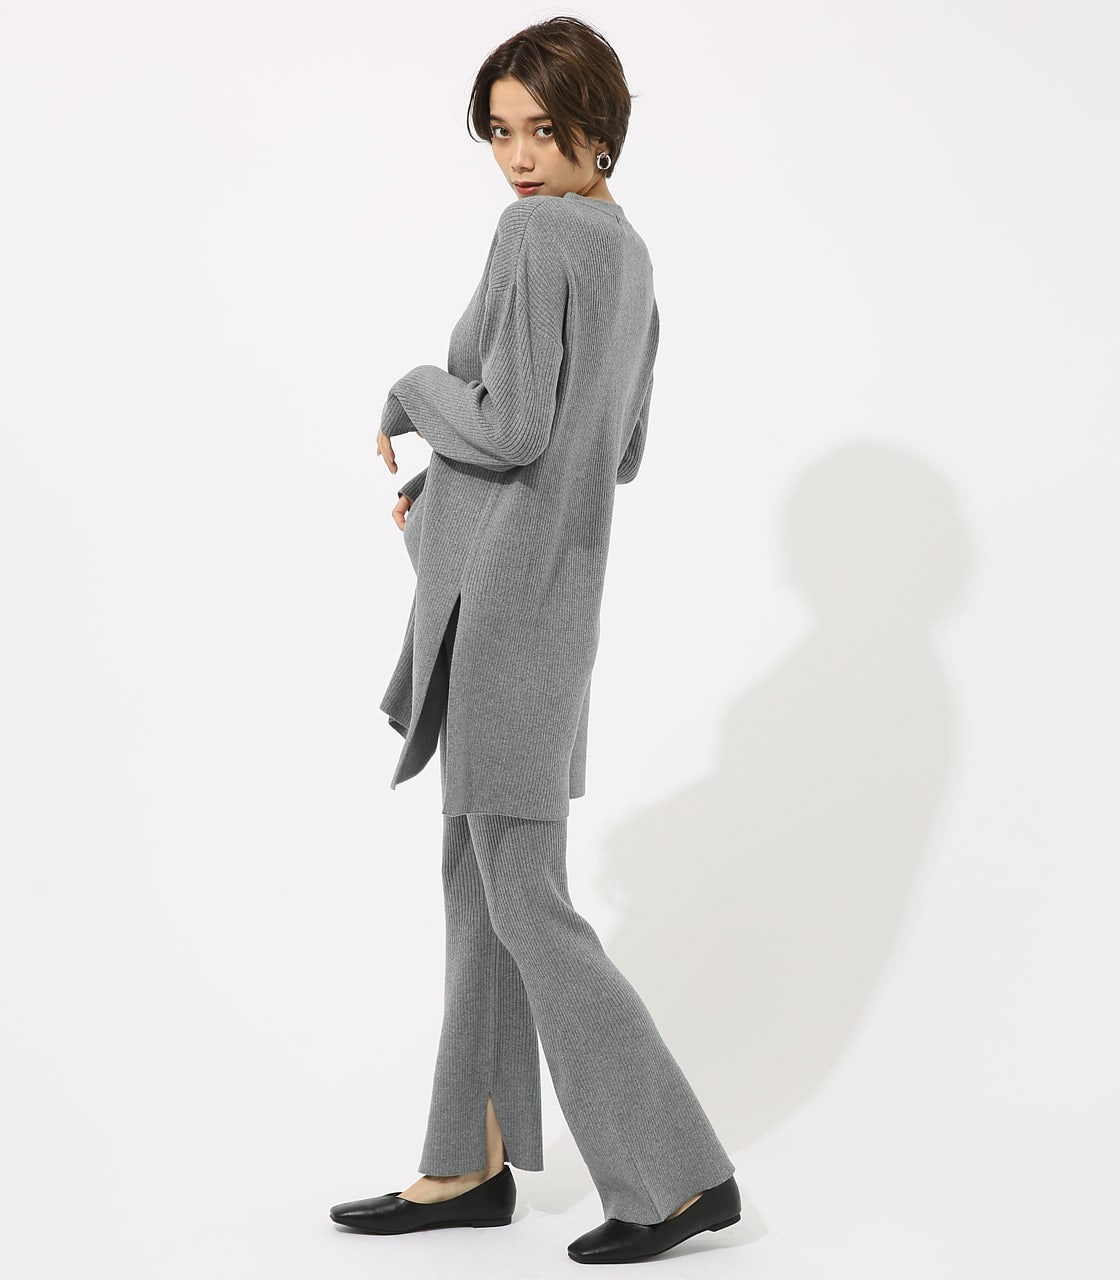 【AZUL BY MOUSSY】リブニットフレアパンツ 詳細画像 T.GRY 3